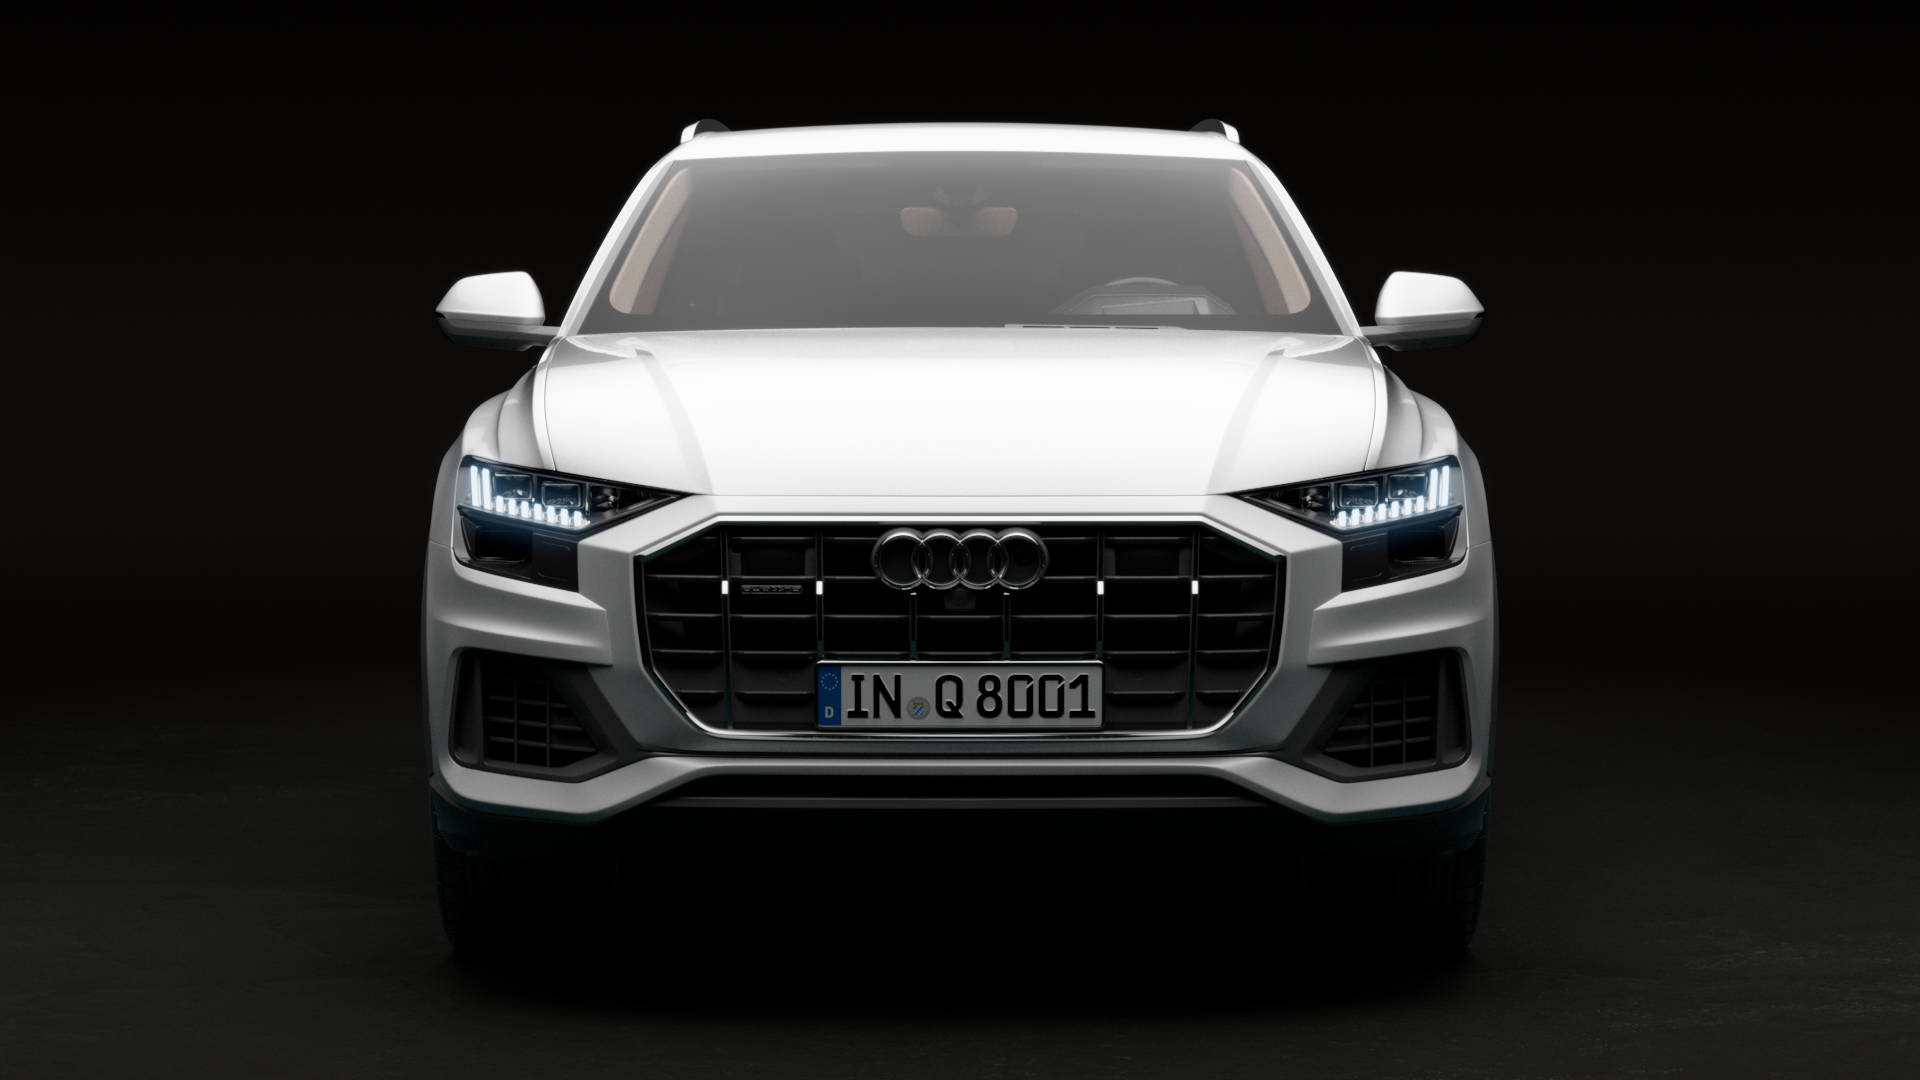 Green Audi Q8 product shot front view.